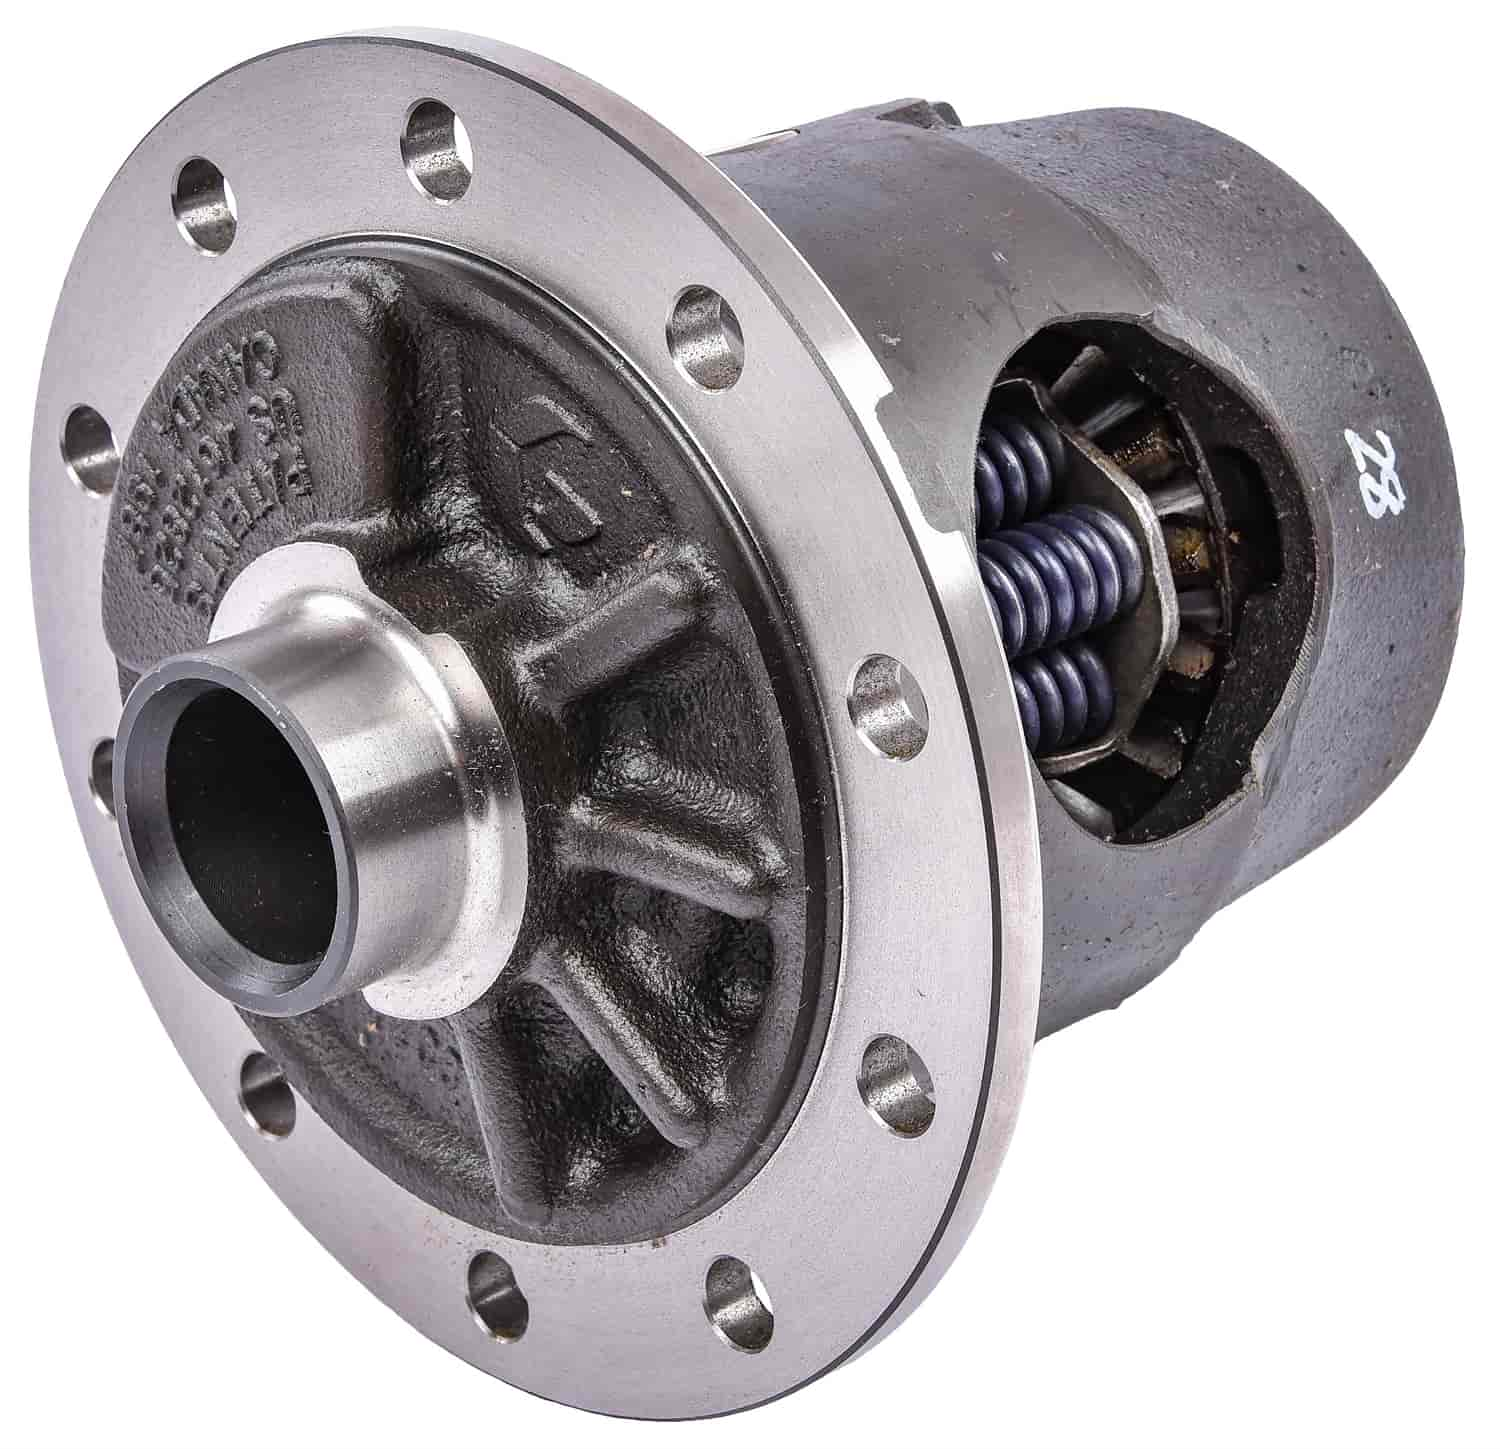 Auburn Gear 542025 - Auburn Gear HP Differentials